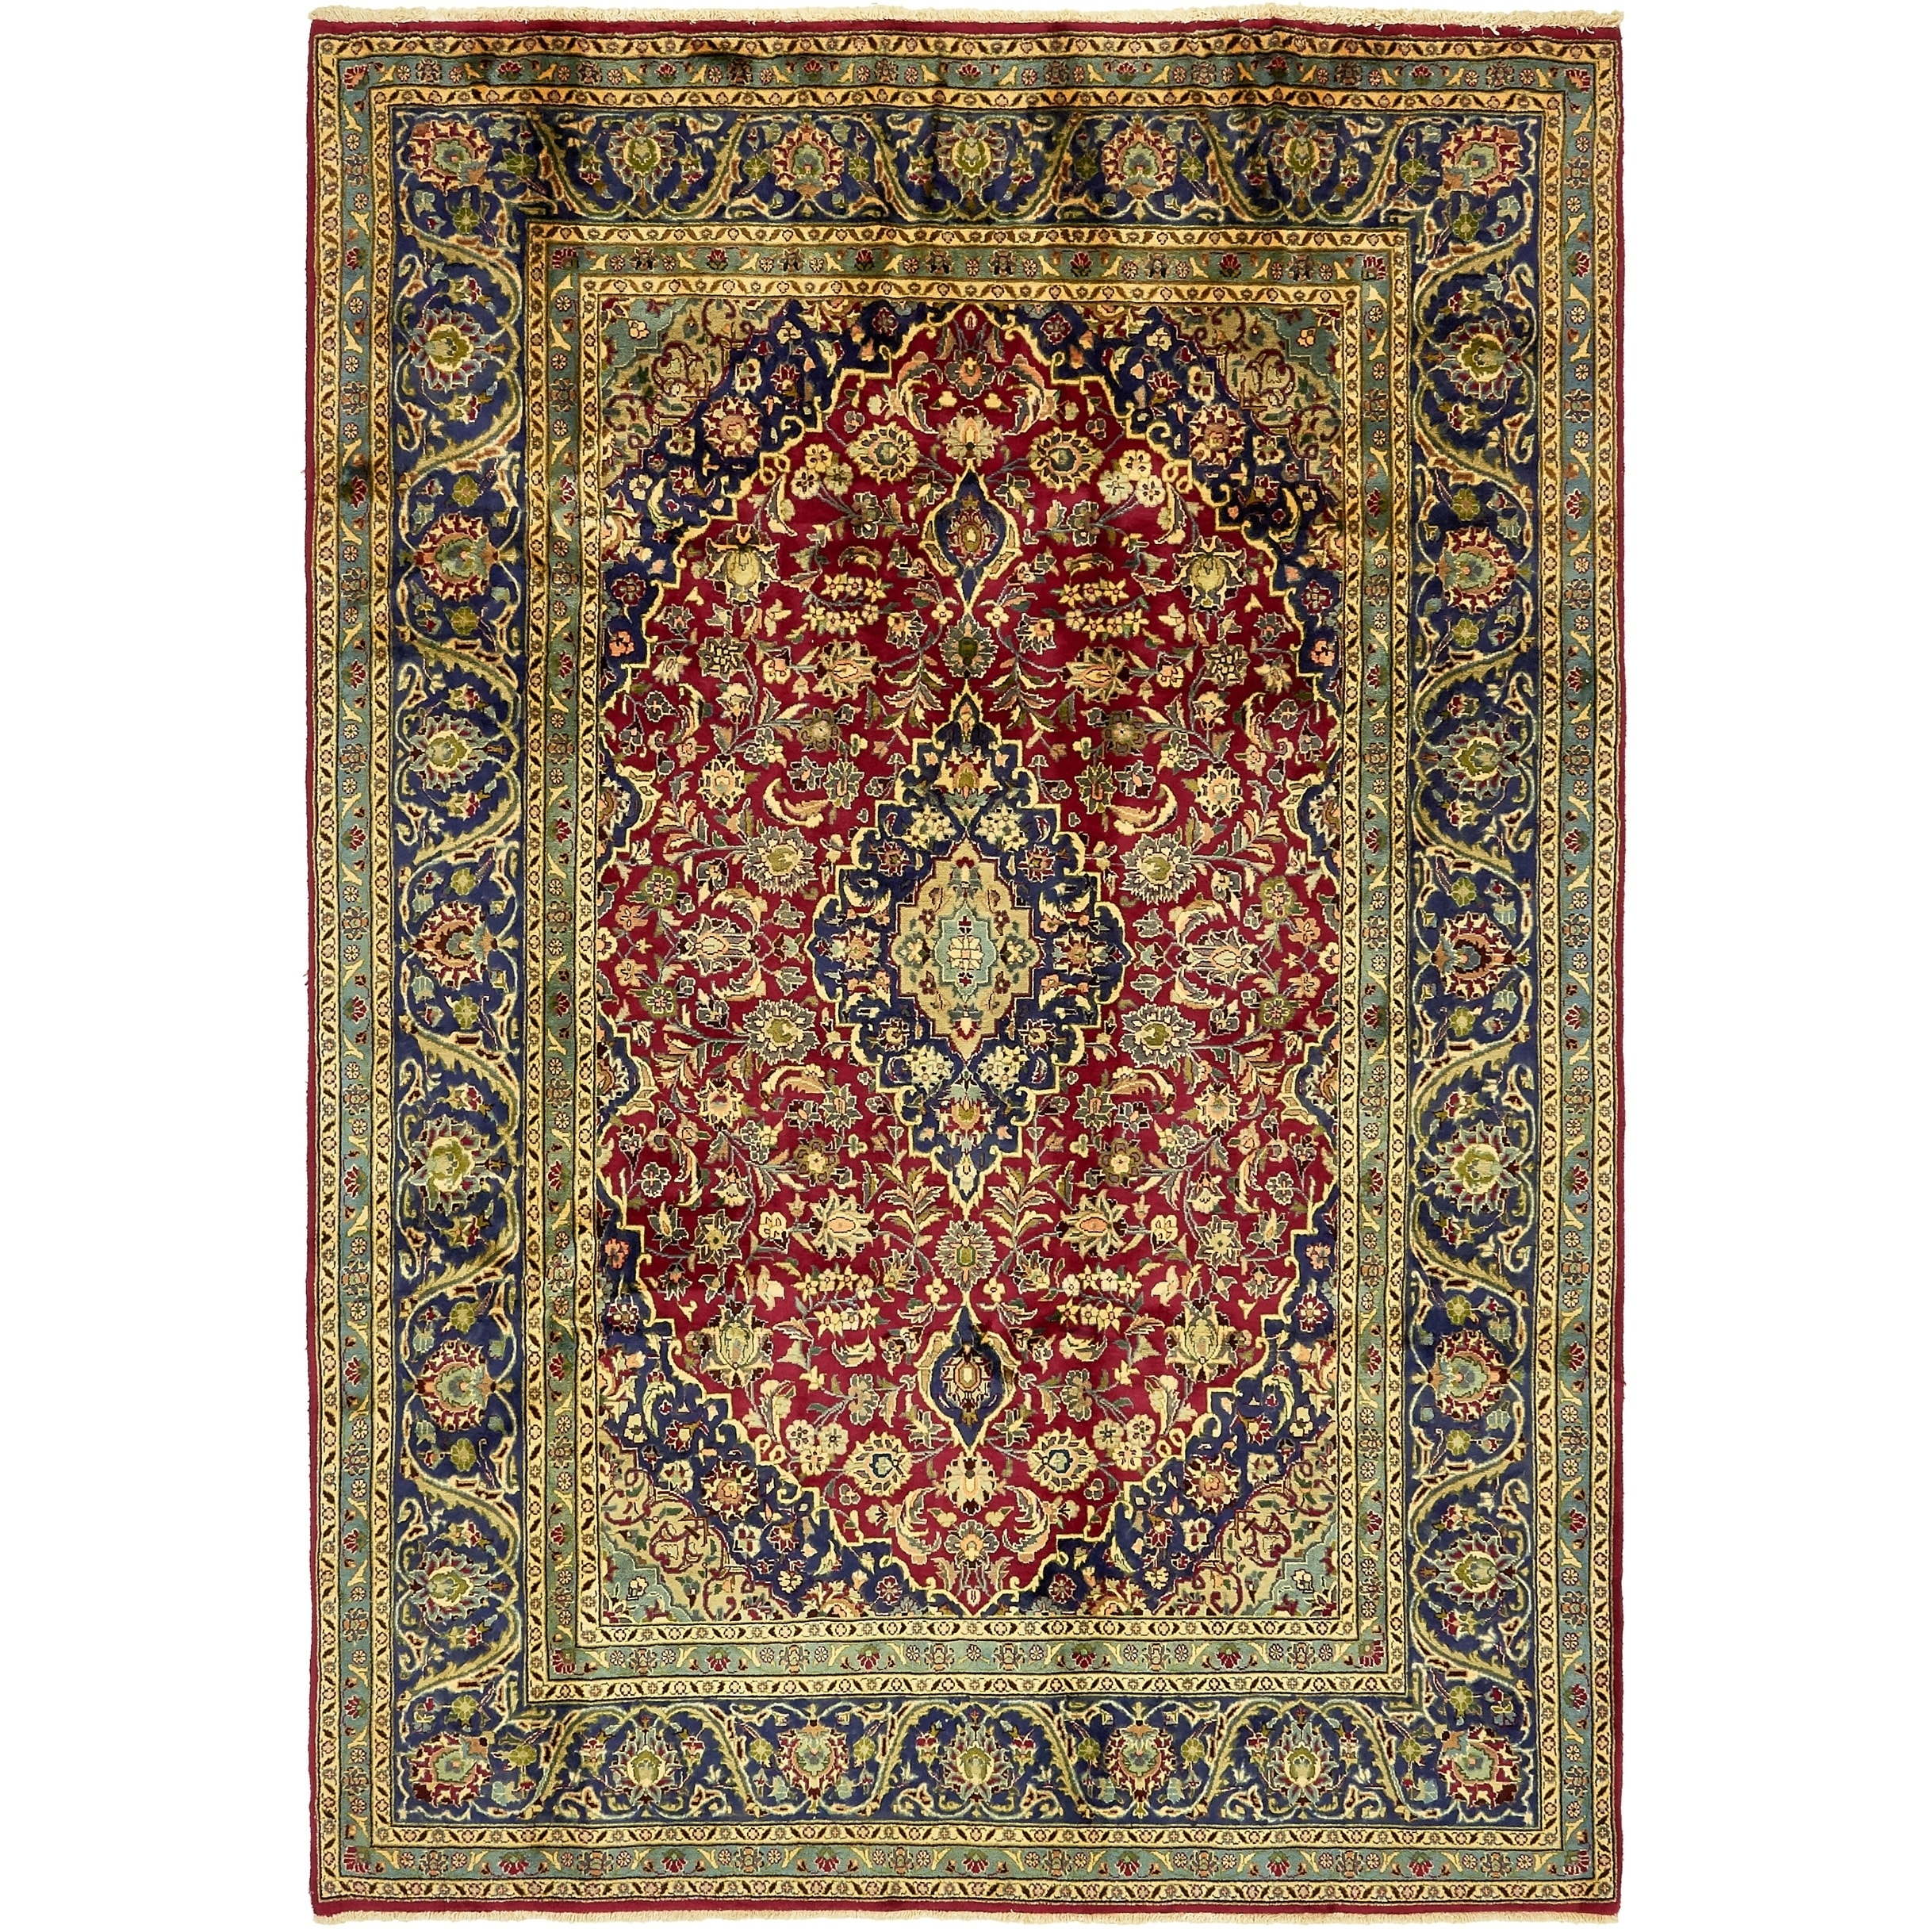 Hand Knotted Kashmar Semi Antique Wool Area Rug - 6 8 x 9 8 (Red - 6 8 x 9 8)